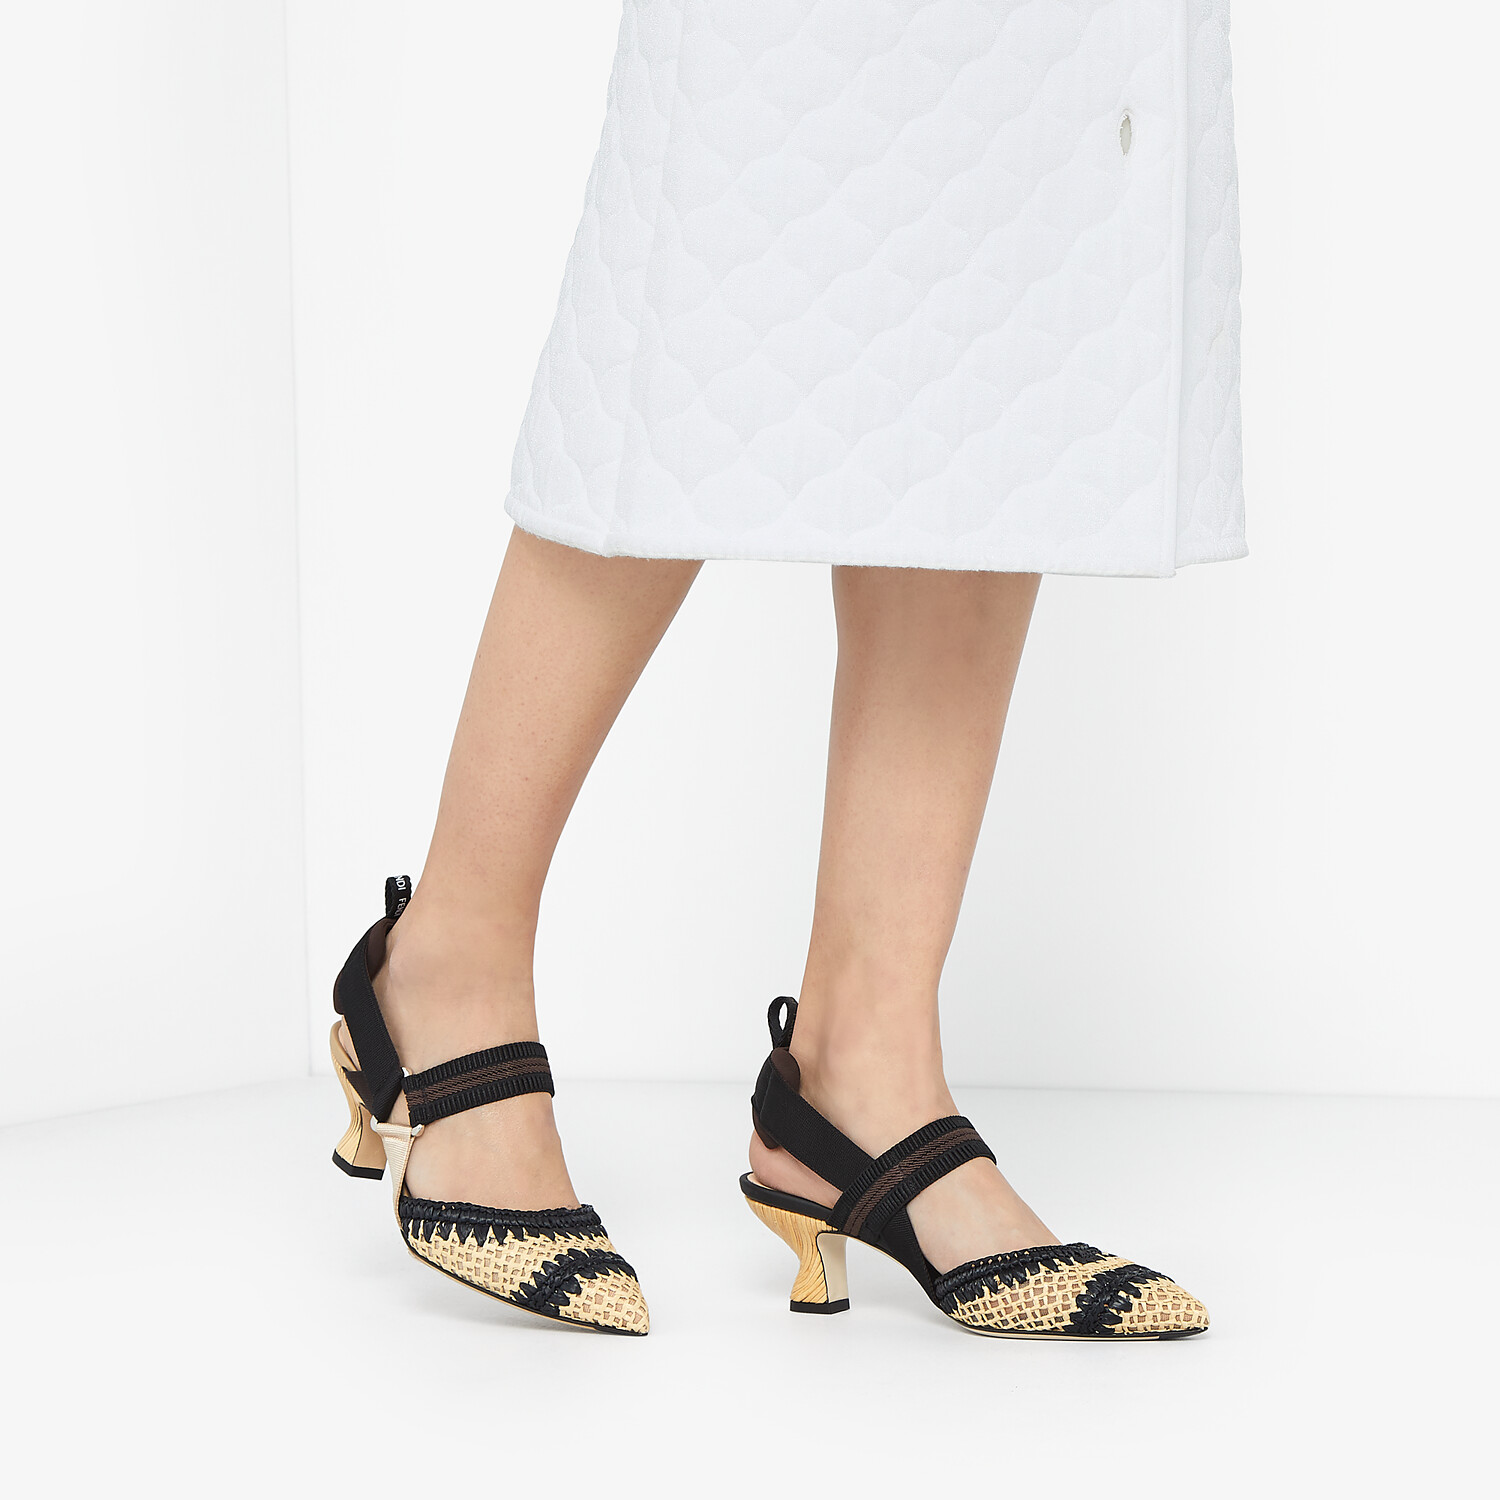 FENDI SLINGBACKS - Black raffia Colibrì slingbacks - view 5 detail